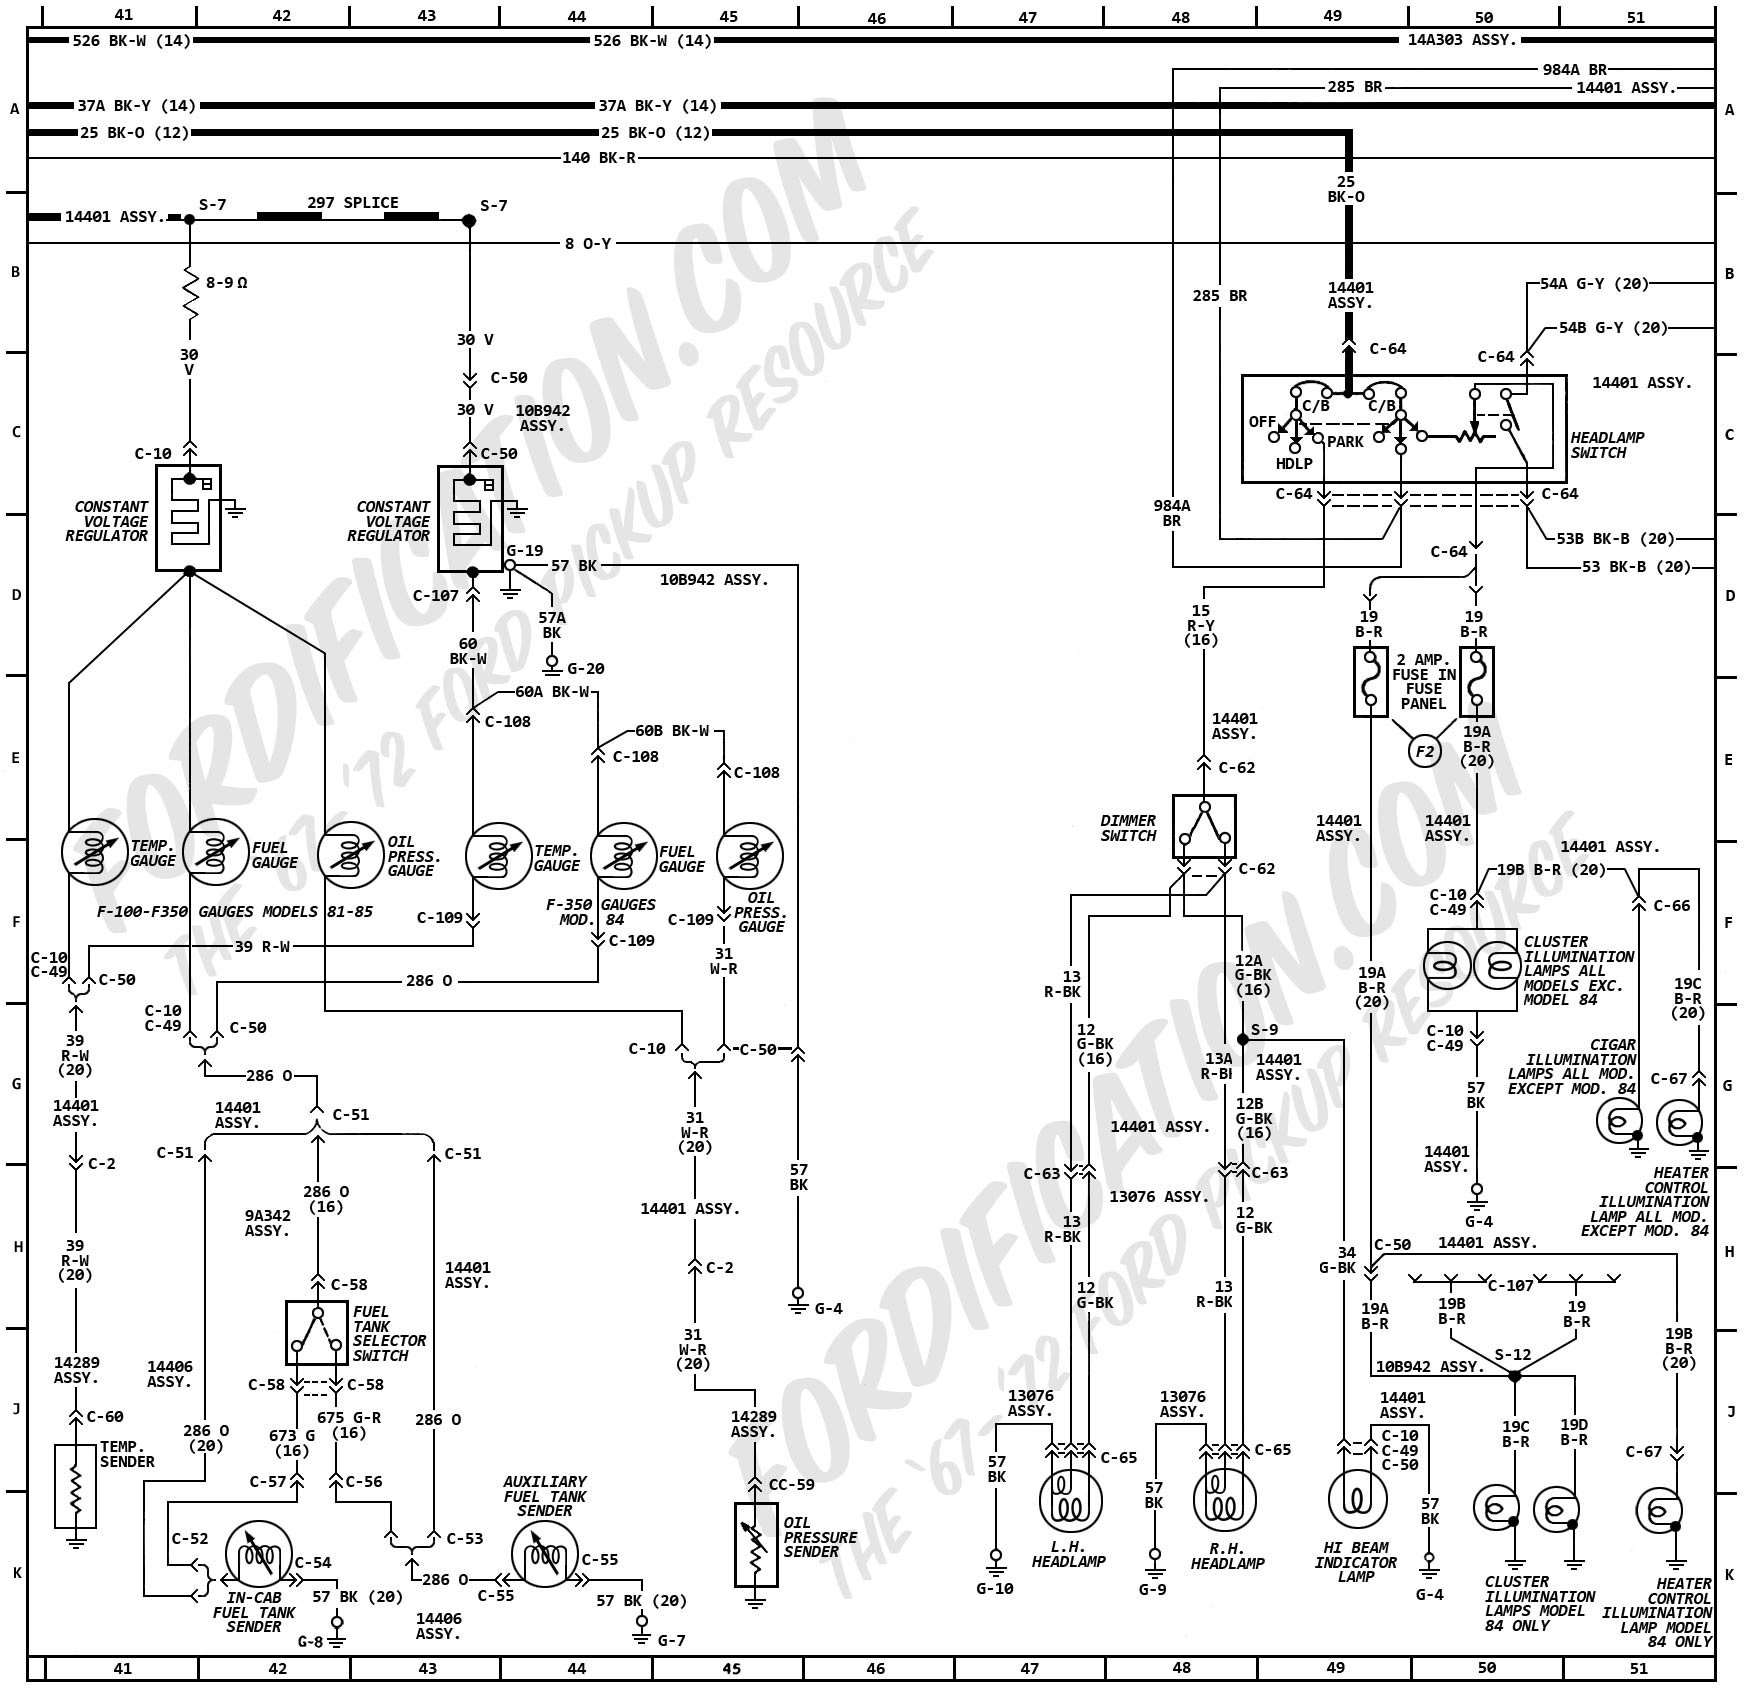 1972 ford f100 ignition switch wiring diagram 2001 mitsubishi montero belt truck diagrams fordification